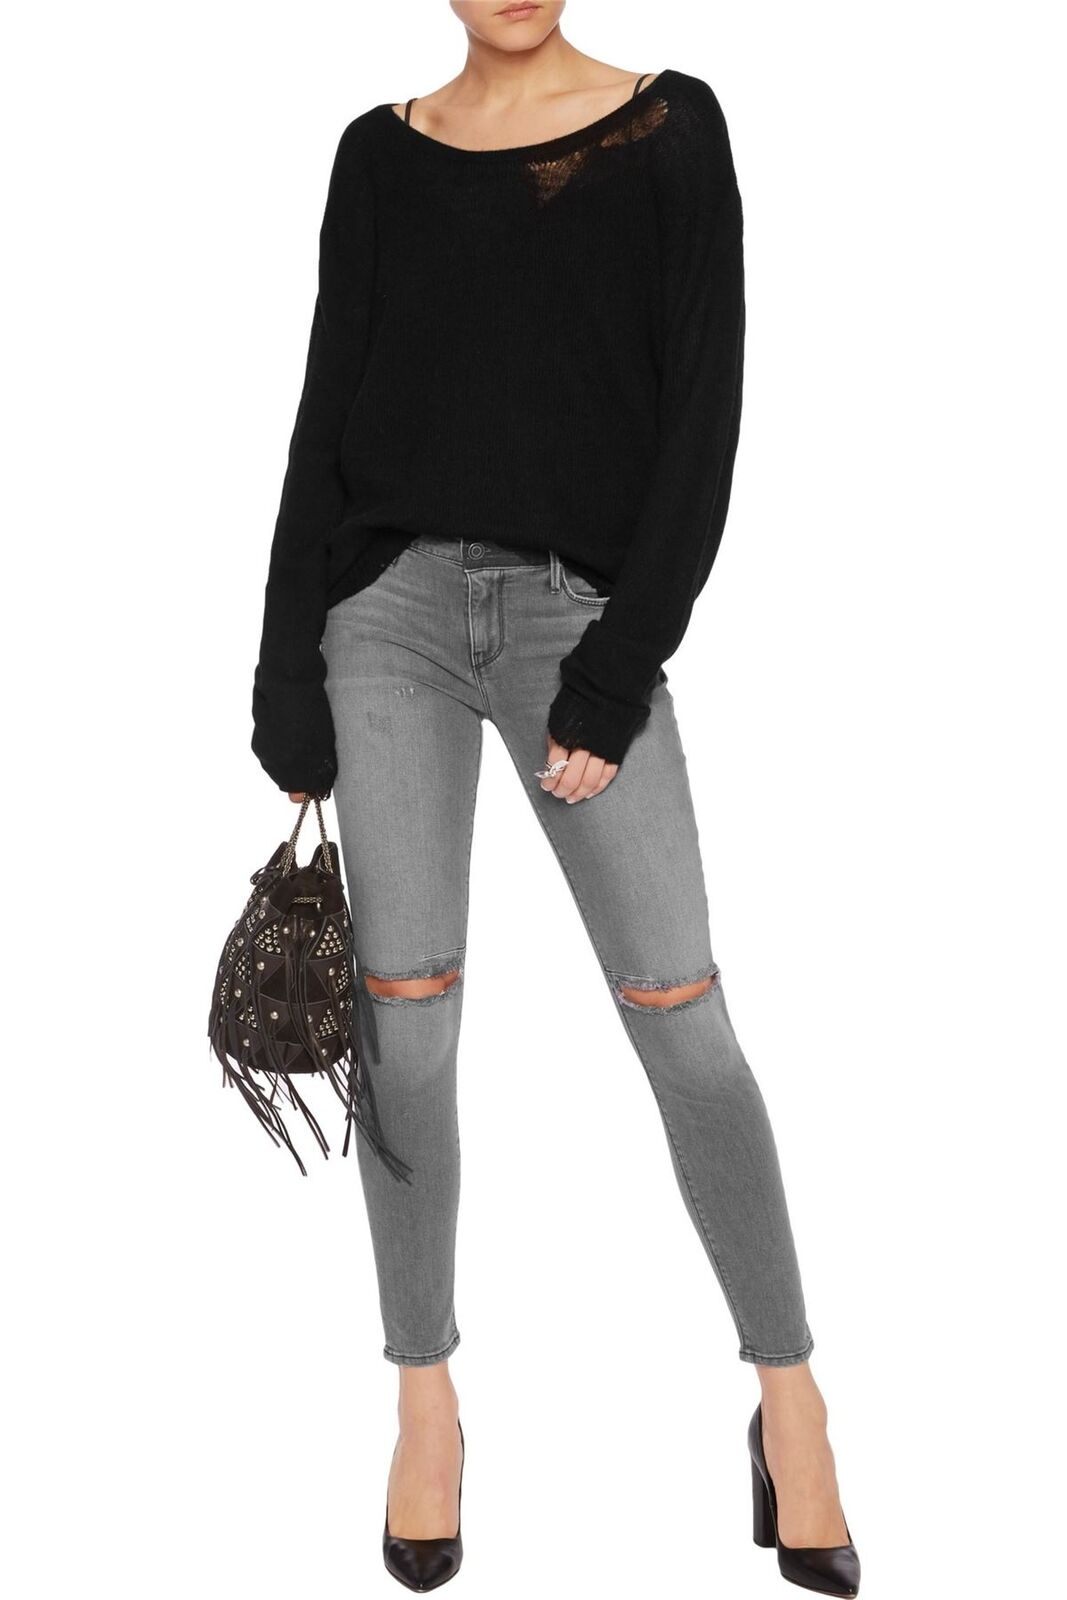 RTA PRINCE MID-RISE DISTRESSED CROPPED SKINNY JEANS W24 UK 6